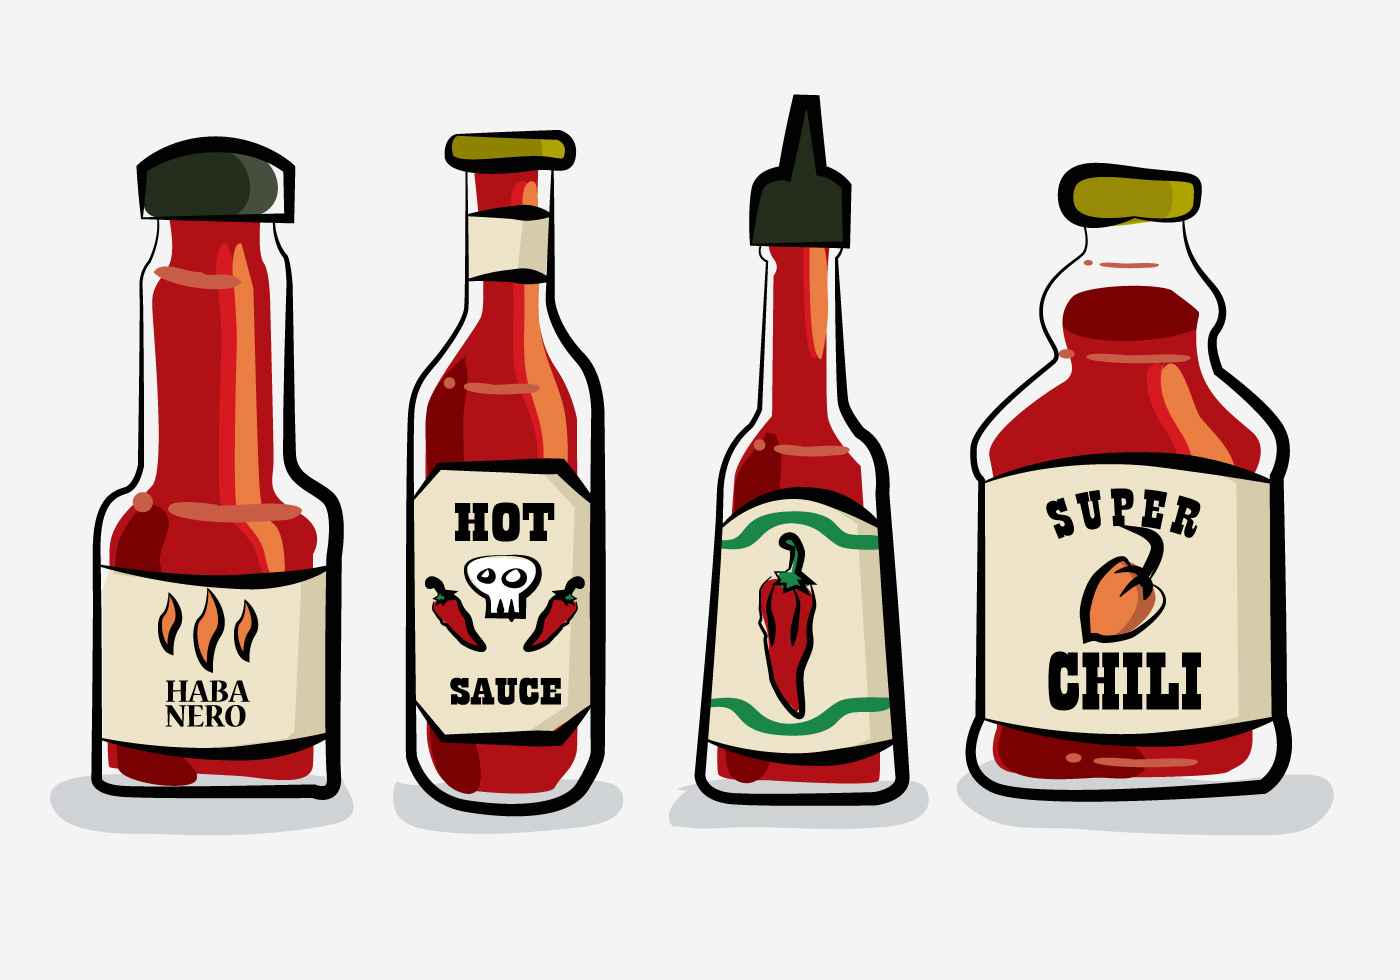 Tabasco sauce clipart image royalty free stock Free Sause Clipart tabasco sauce, Download Free Clip Art on ... image royalty free stock